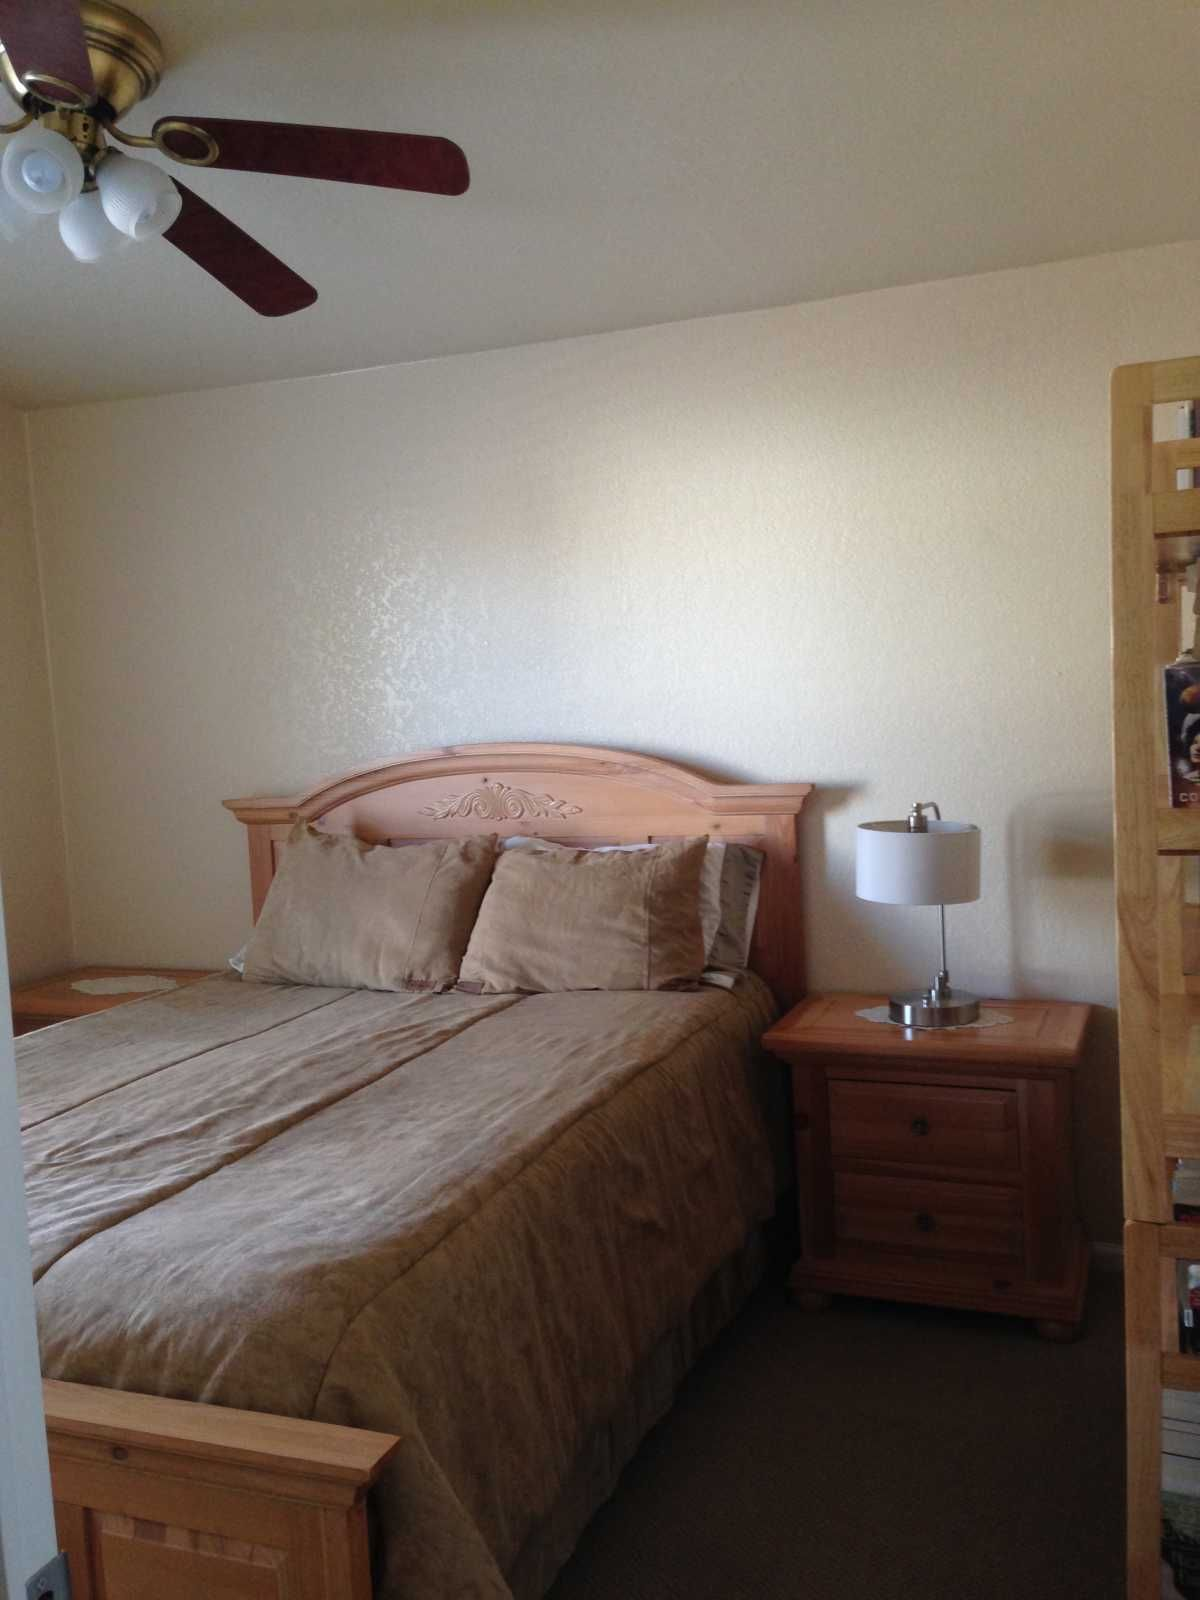 Schult Manufactured Home For Sale In Las Vegas Nv Manufactured Homes For Sale Manufactured Home Mobile Homes For Sale